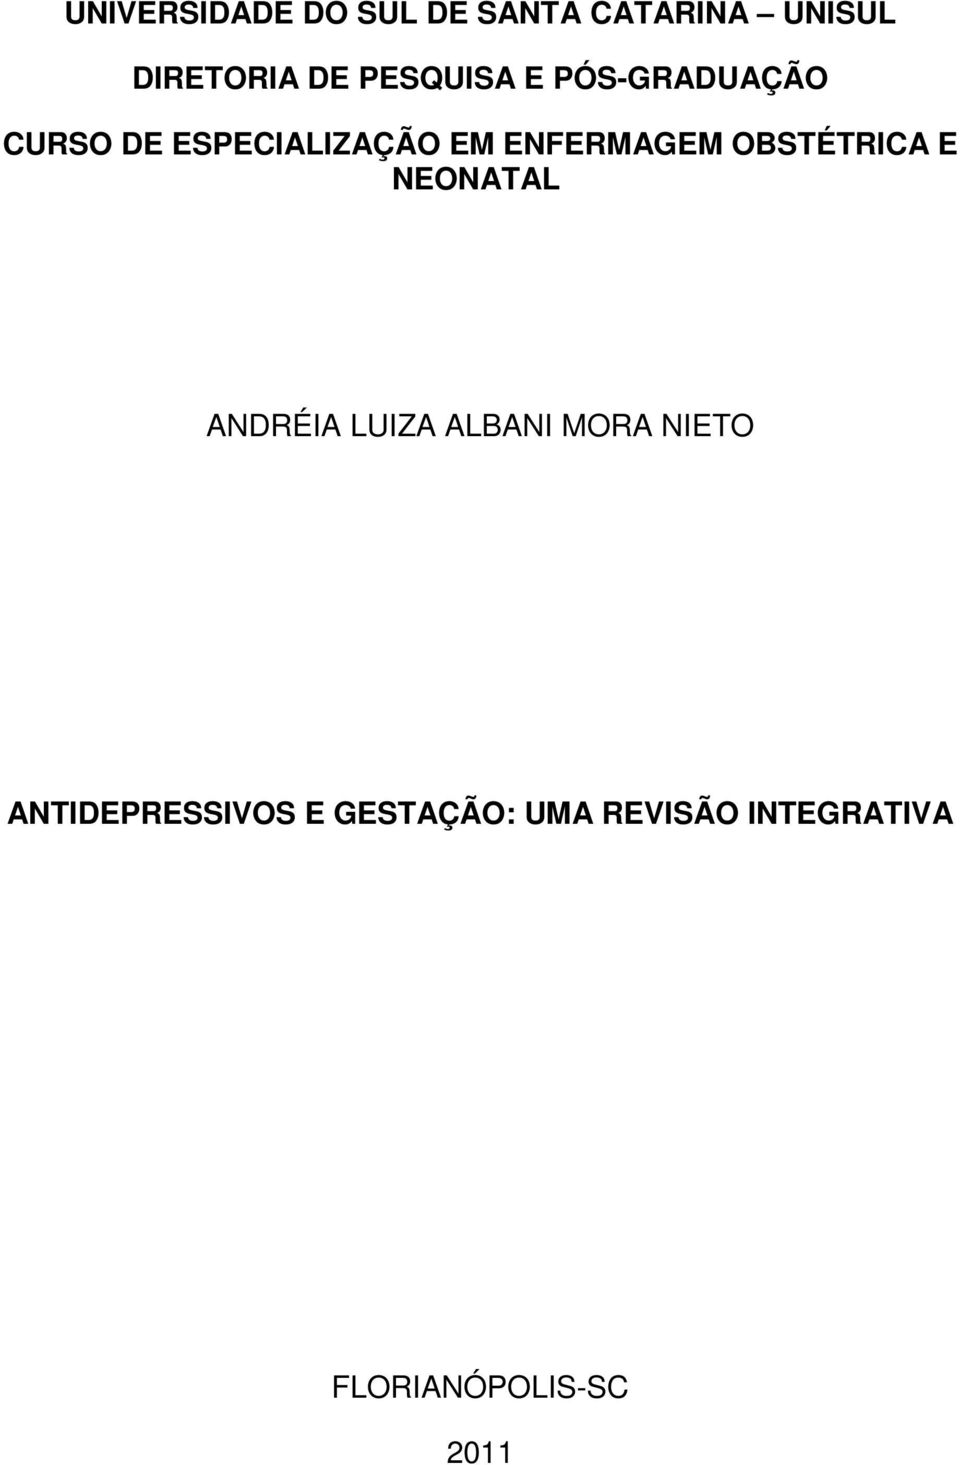 ENFERMAGEM OBSTÉTRICA E NEONATAL ANDRÉIA LUIZA ALBANI MORA